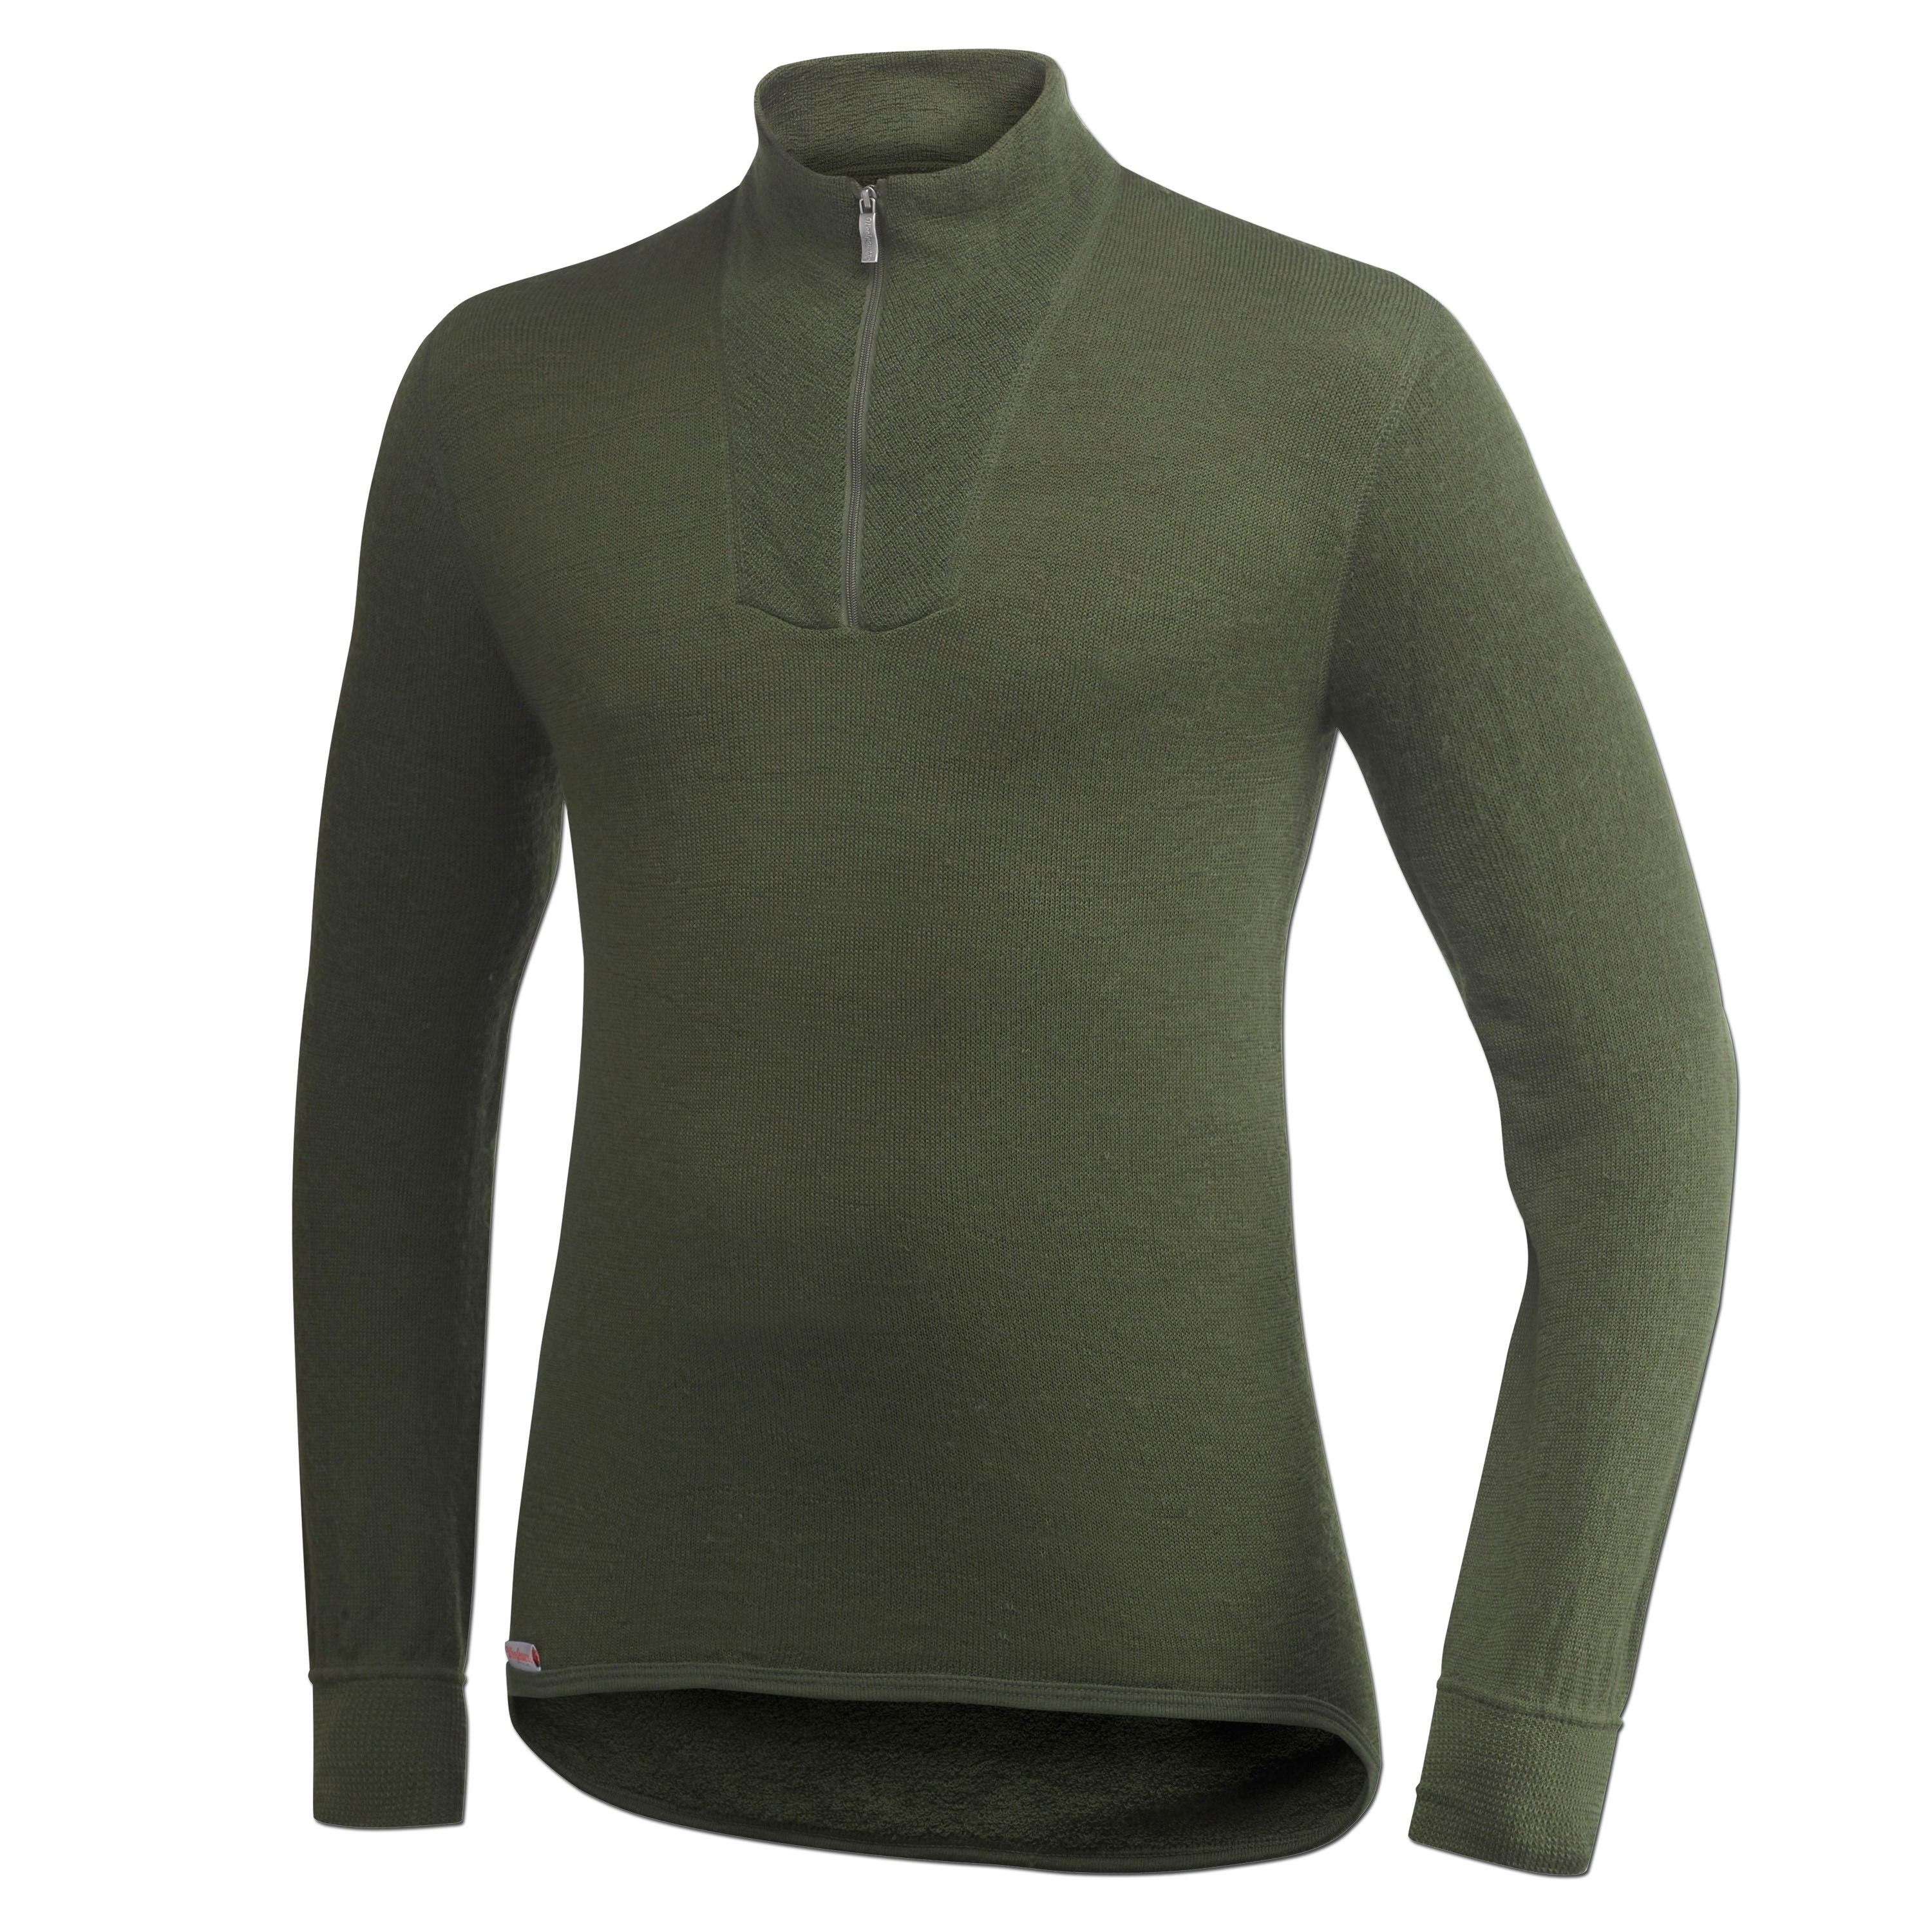 Camiseta Woolpower Turtleneck 200 verde oliva